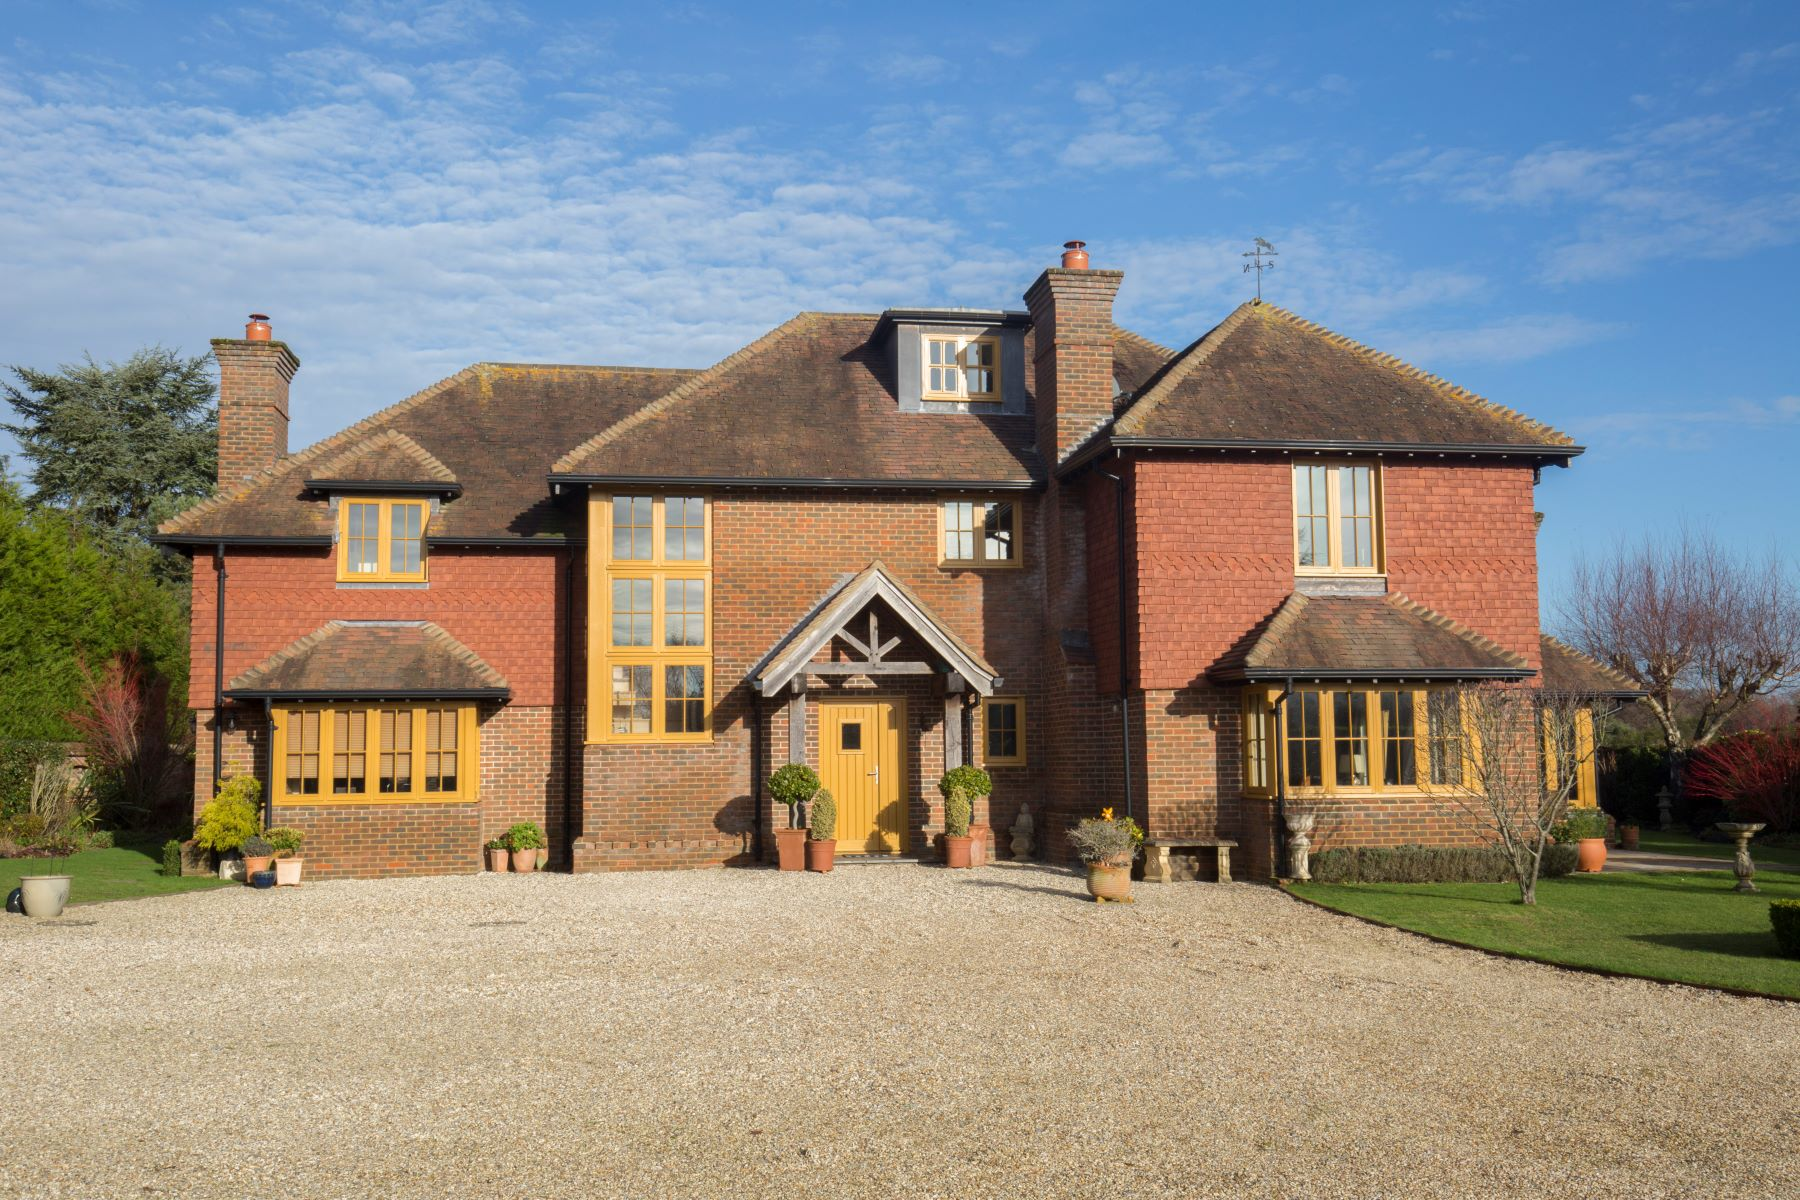 Single Family Homes for Sale at Cranford House Sandy Down Boldre, England SO41 8PL United Kingdom